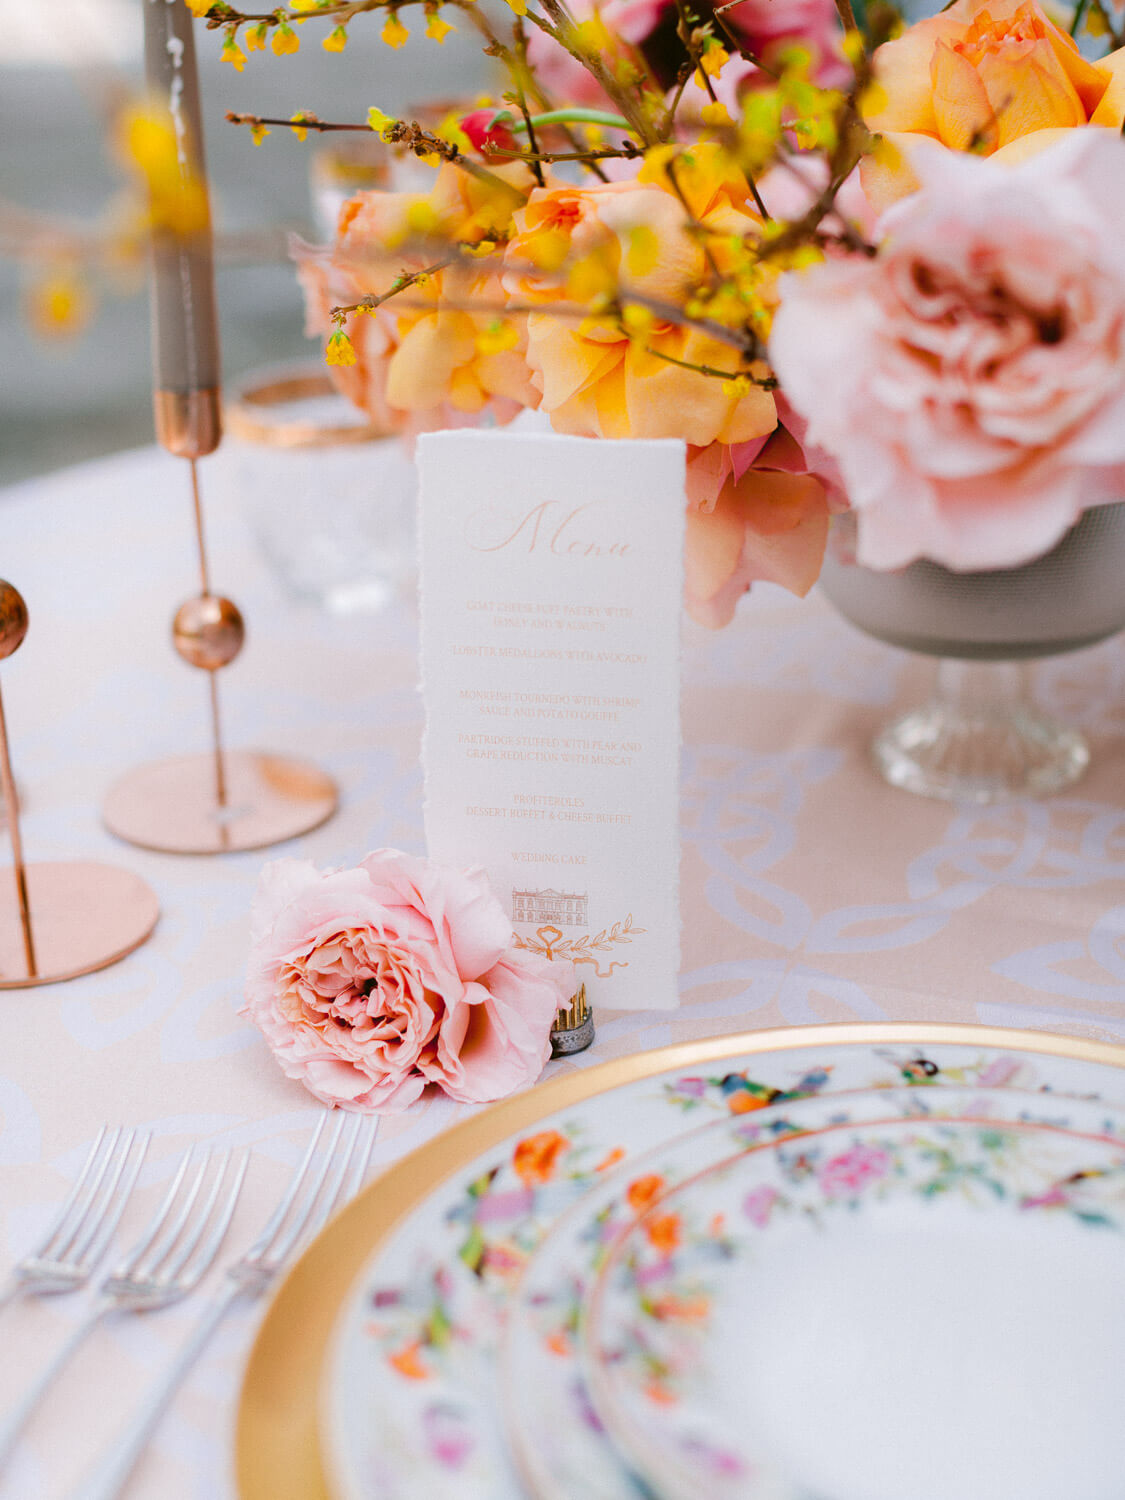 table setting detail on wedding reception table by Portugal Wedding Photographer